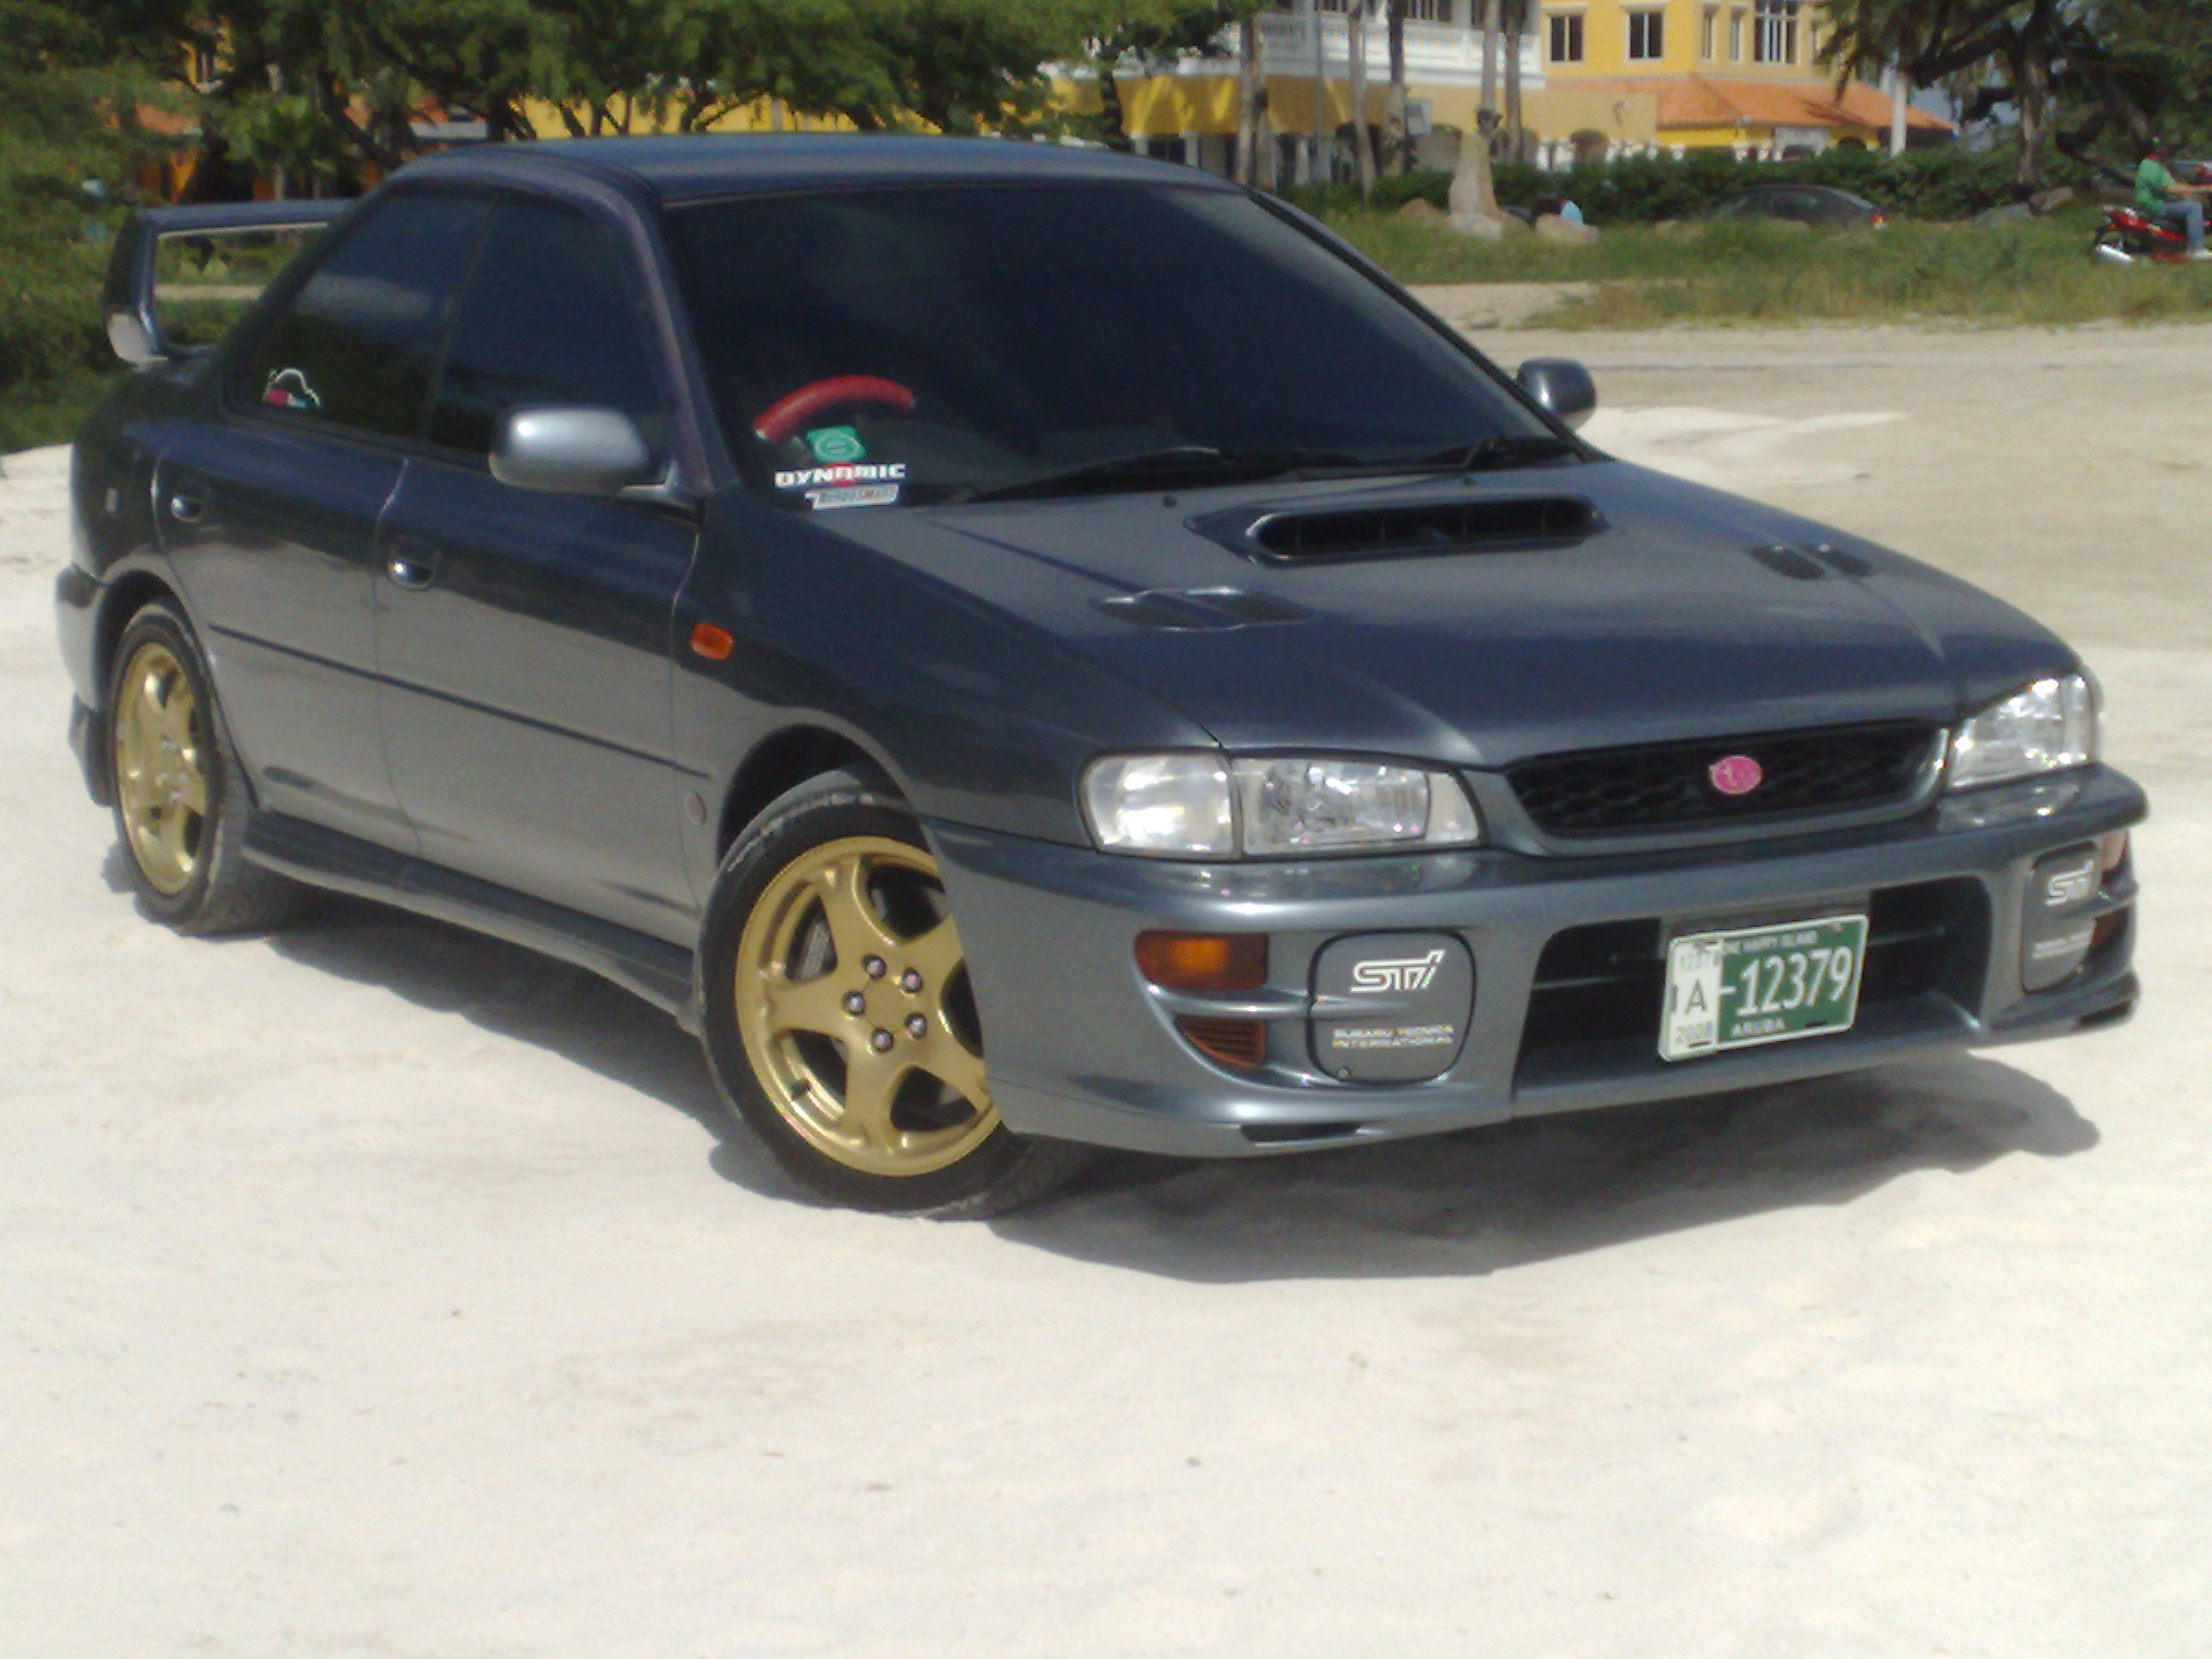 Wrx Sti 0 60 >> 1999 Subaru Impreza Jdm Sti 1 4 Mile Trap Speeds 0 60